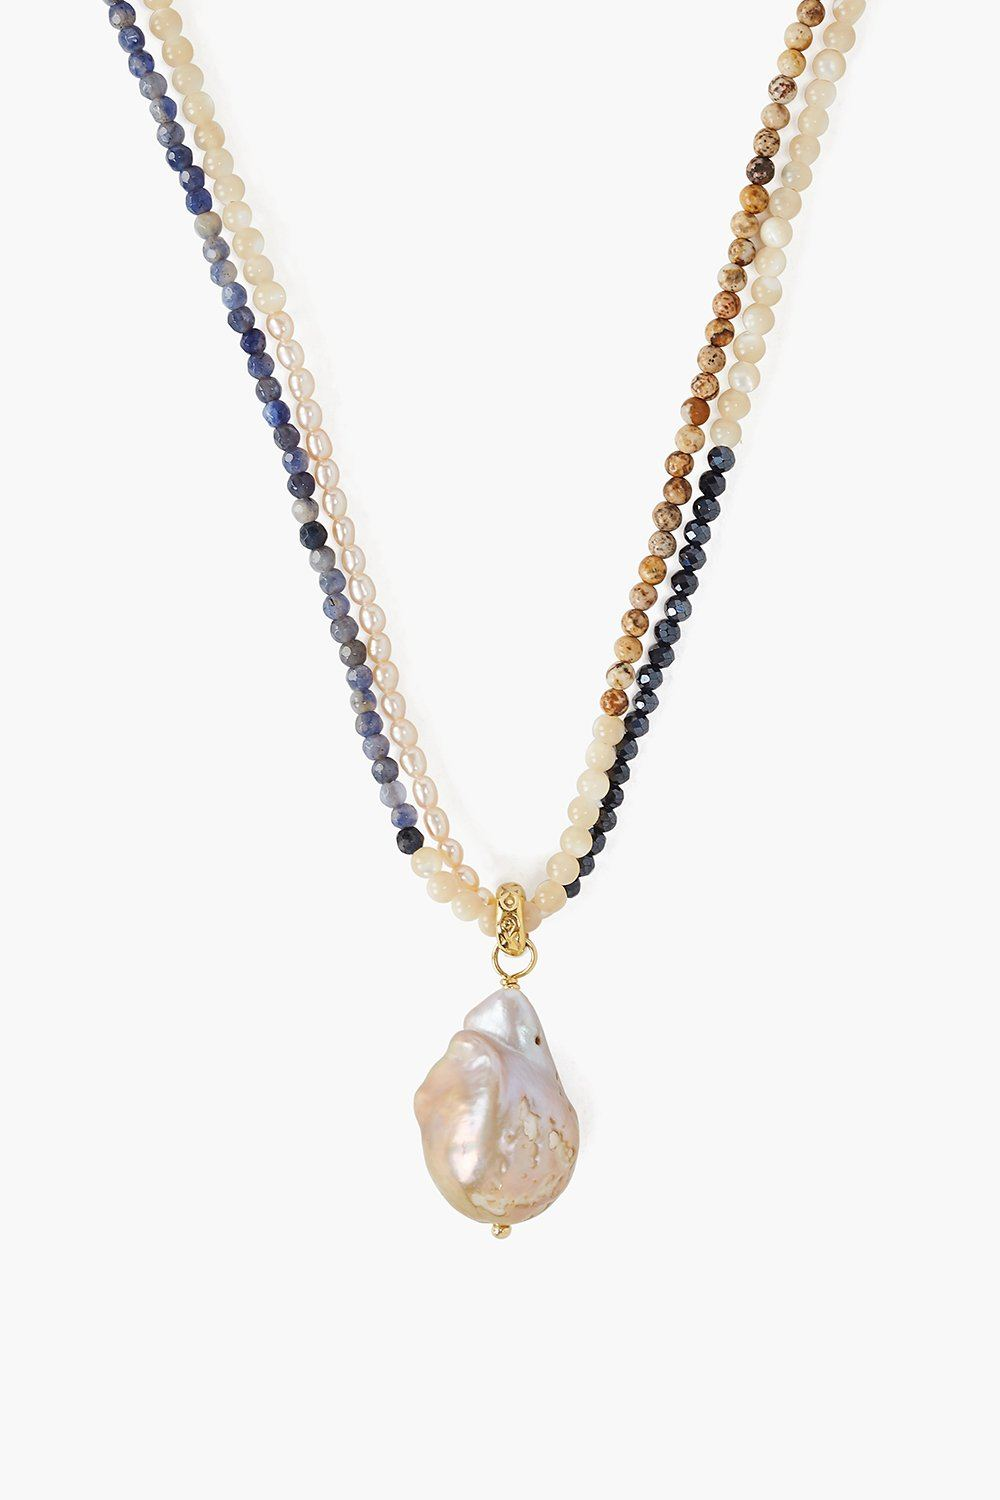 Baroque Pearl Natural Mix Color Block Necklace